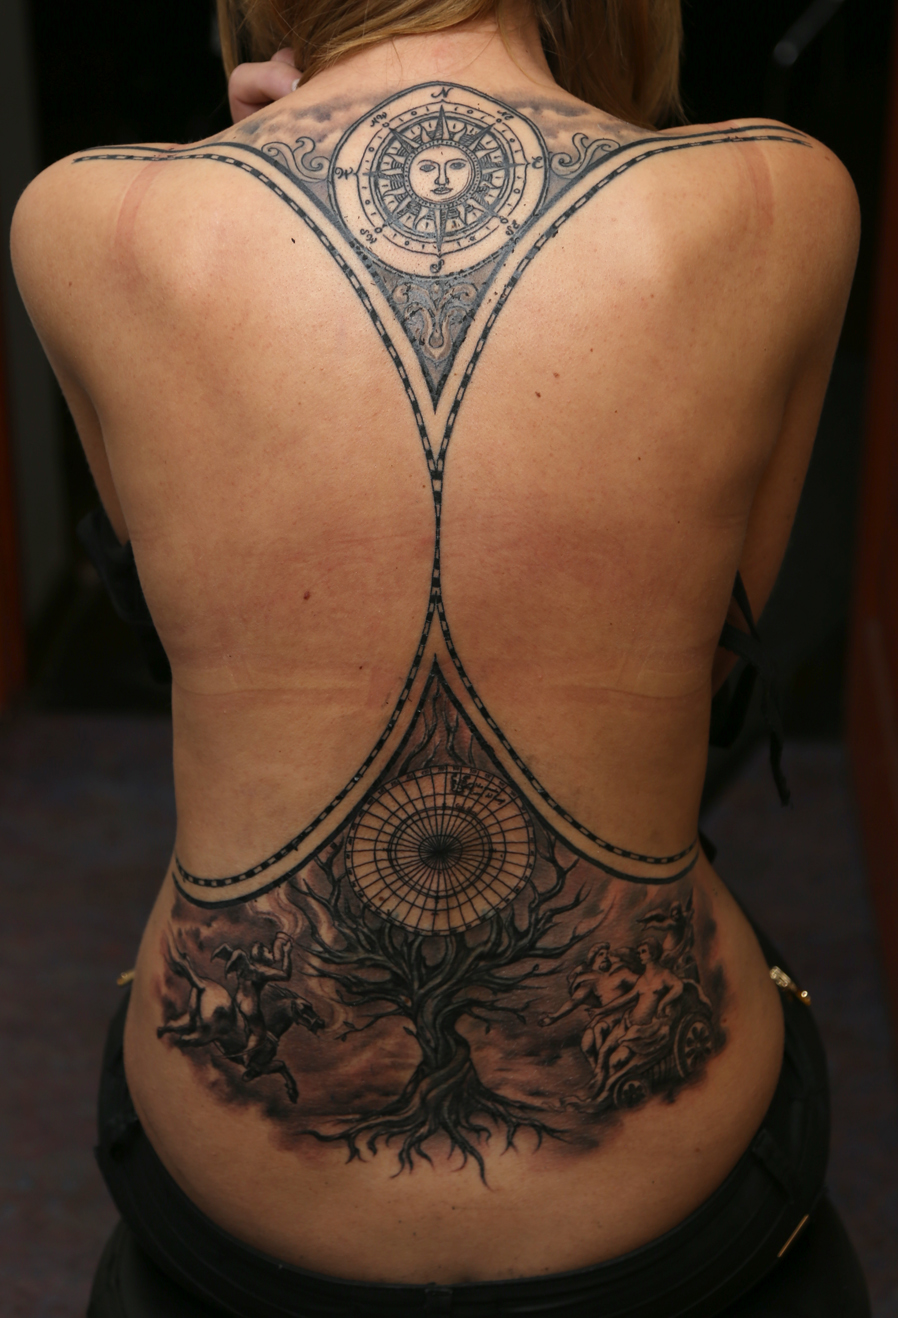 Old World Map Back Tattoo. World Map WIP by strangeris on DeviantArt